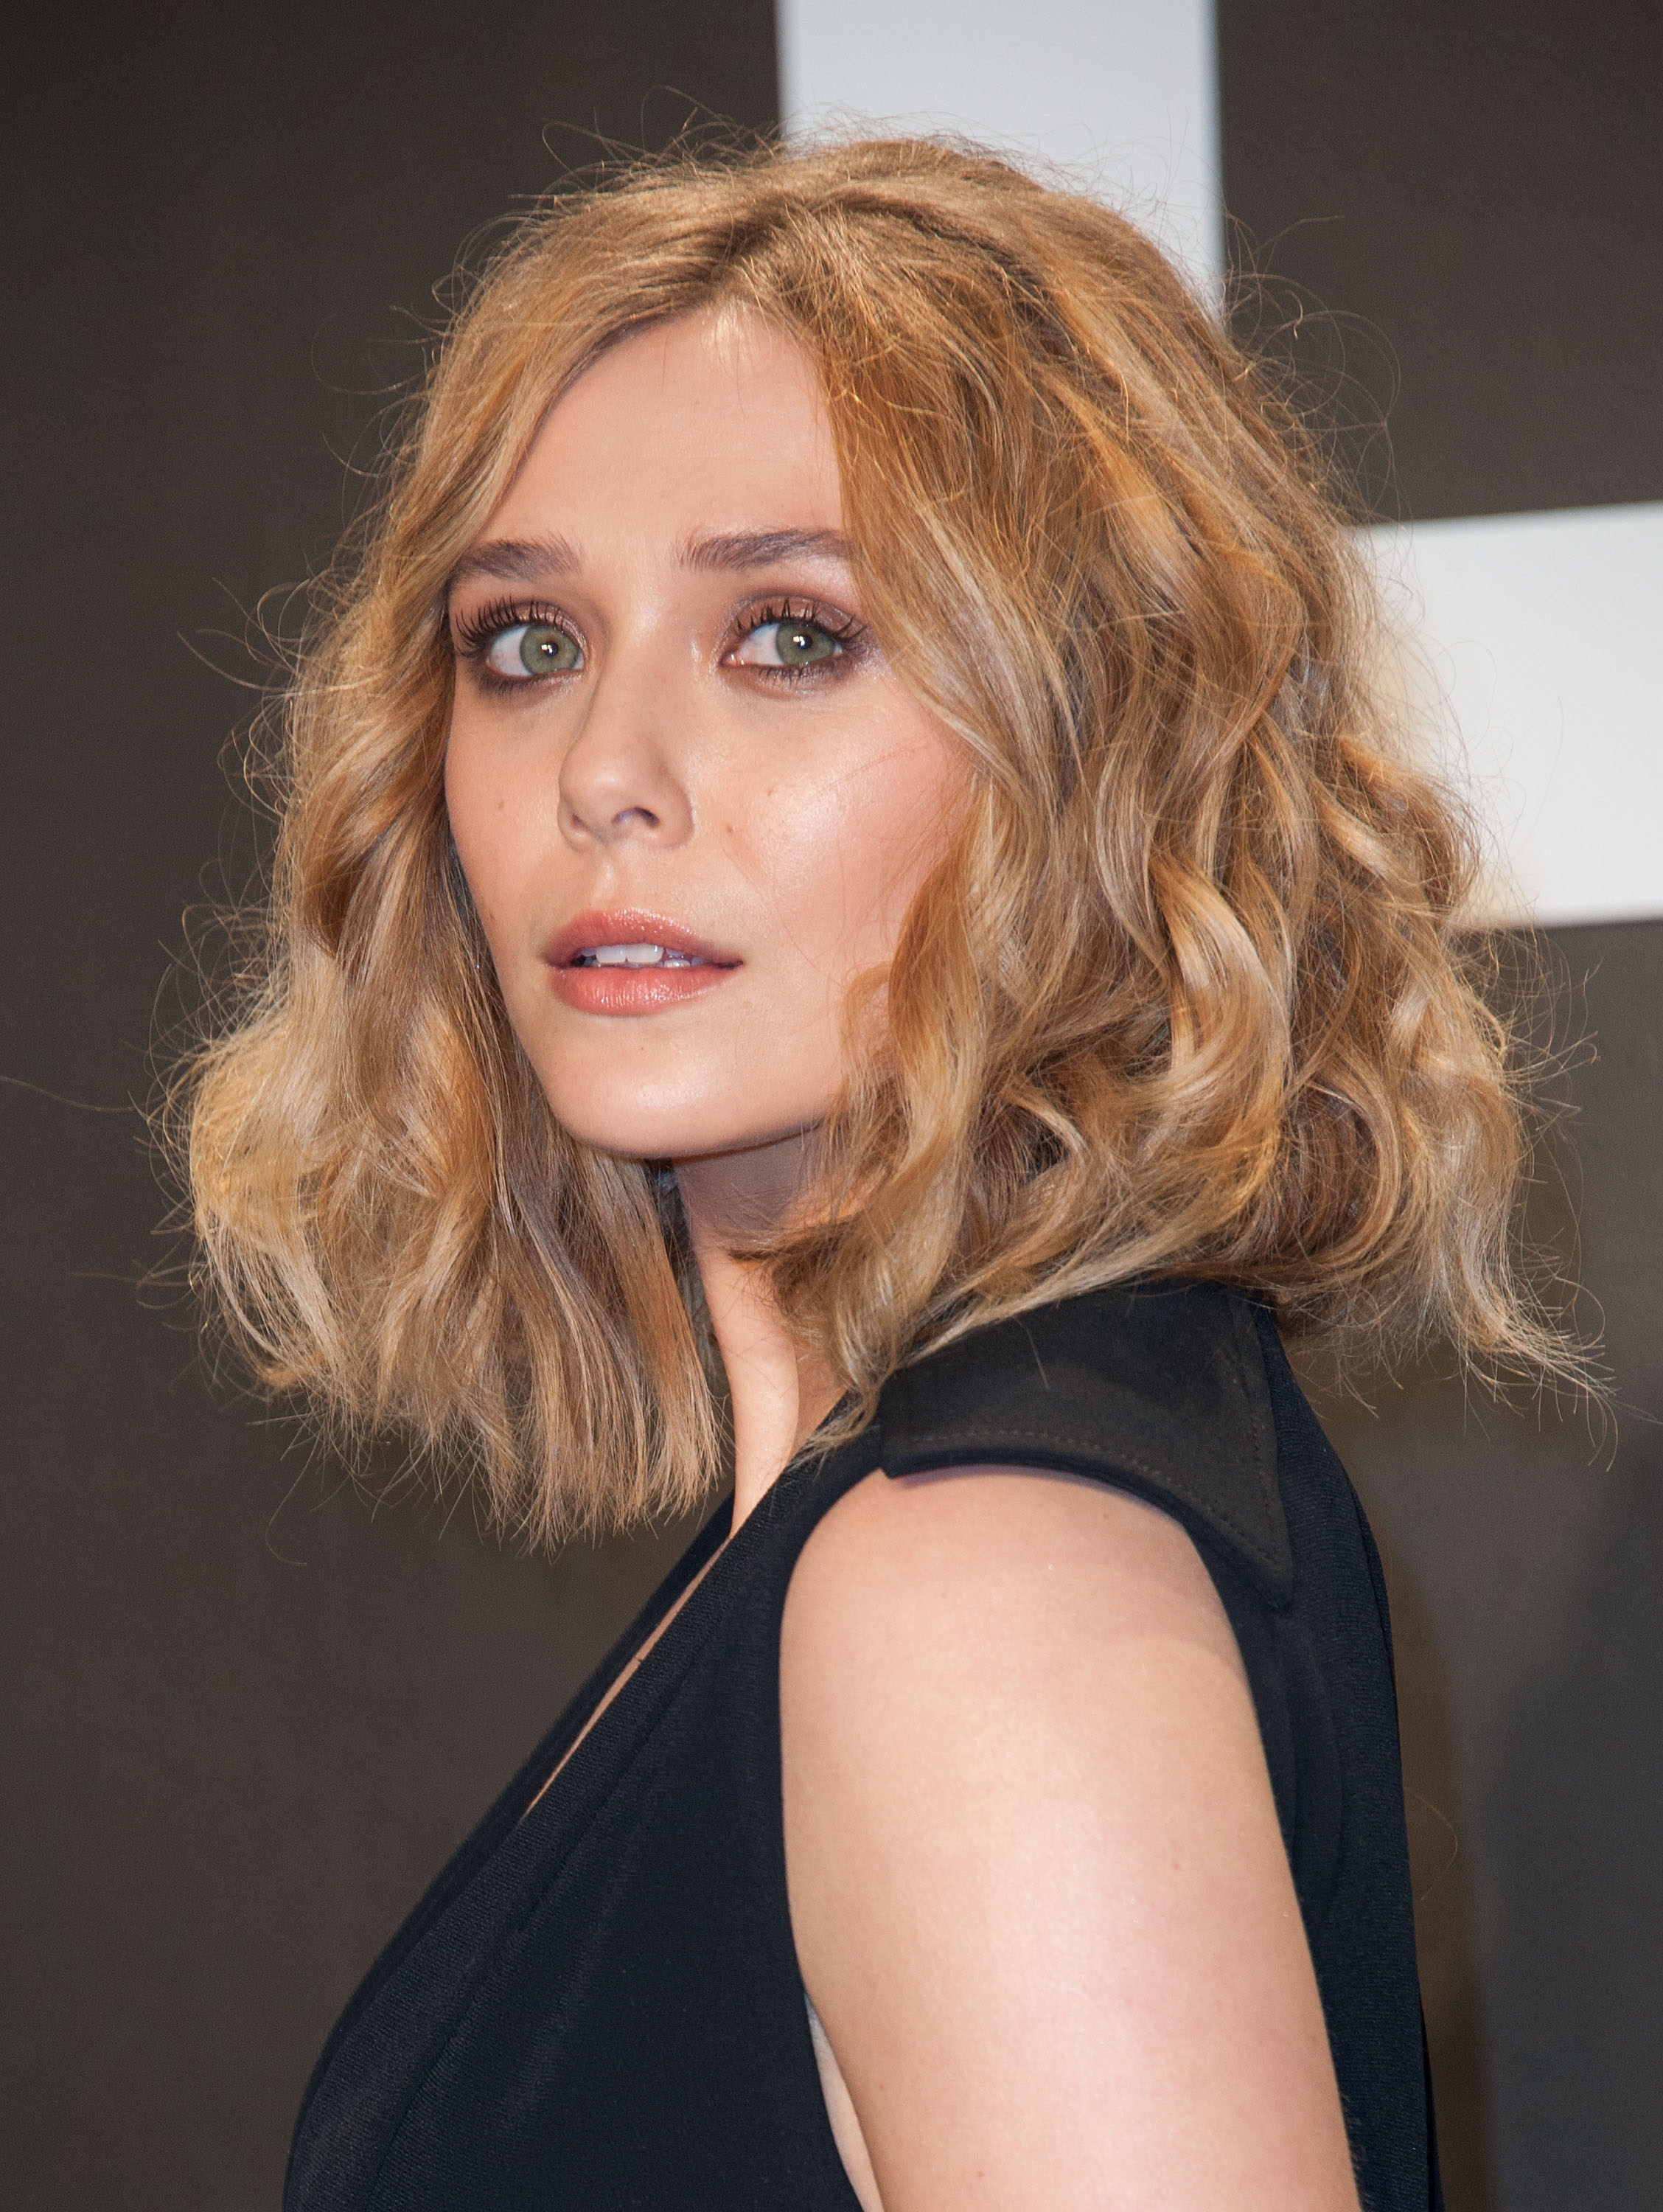 Elizabeth Olsen Nails Menswear Trend While Channeling Her